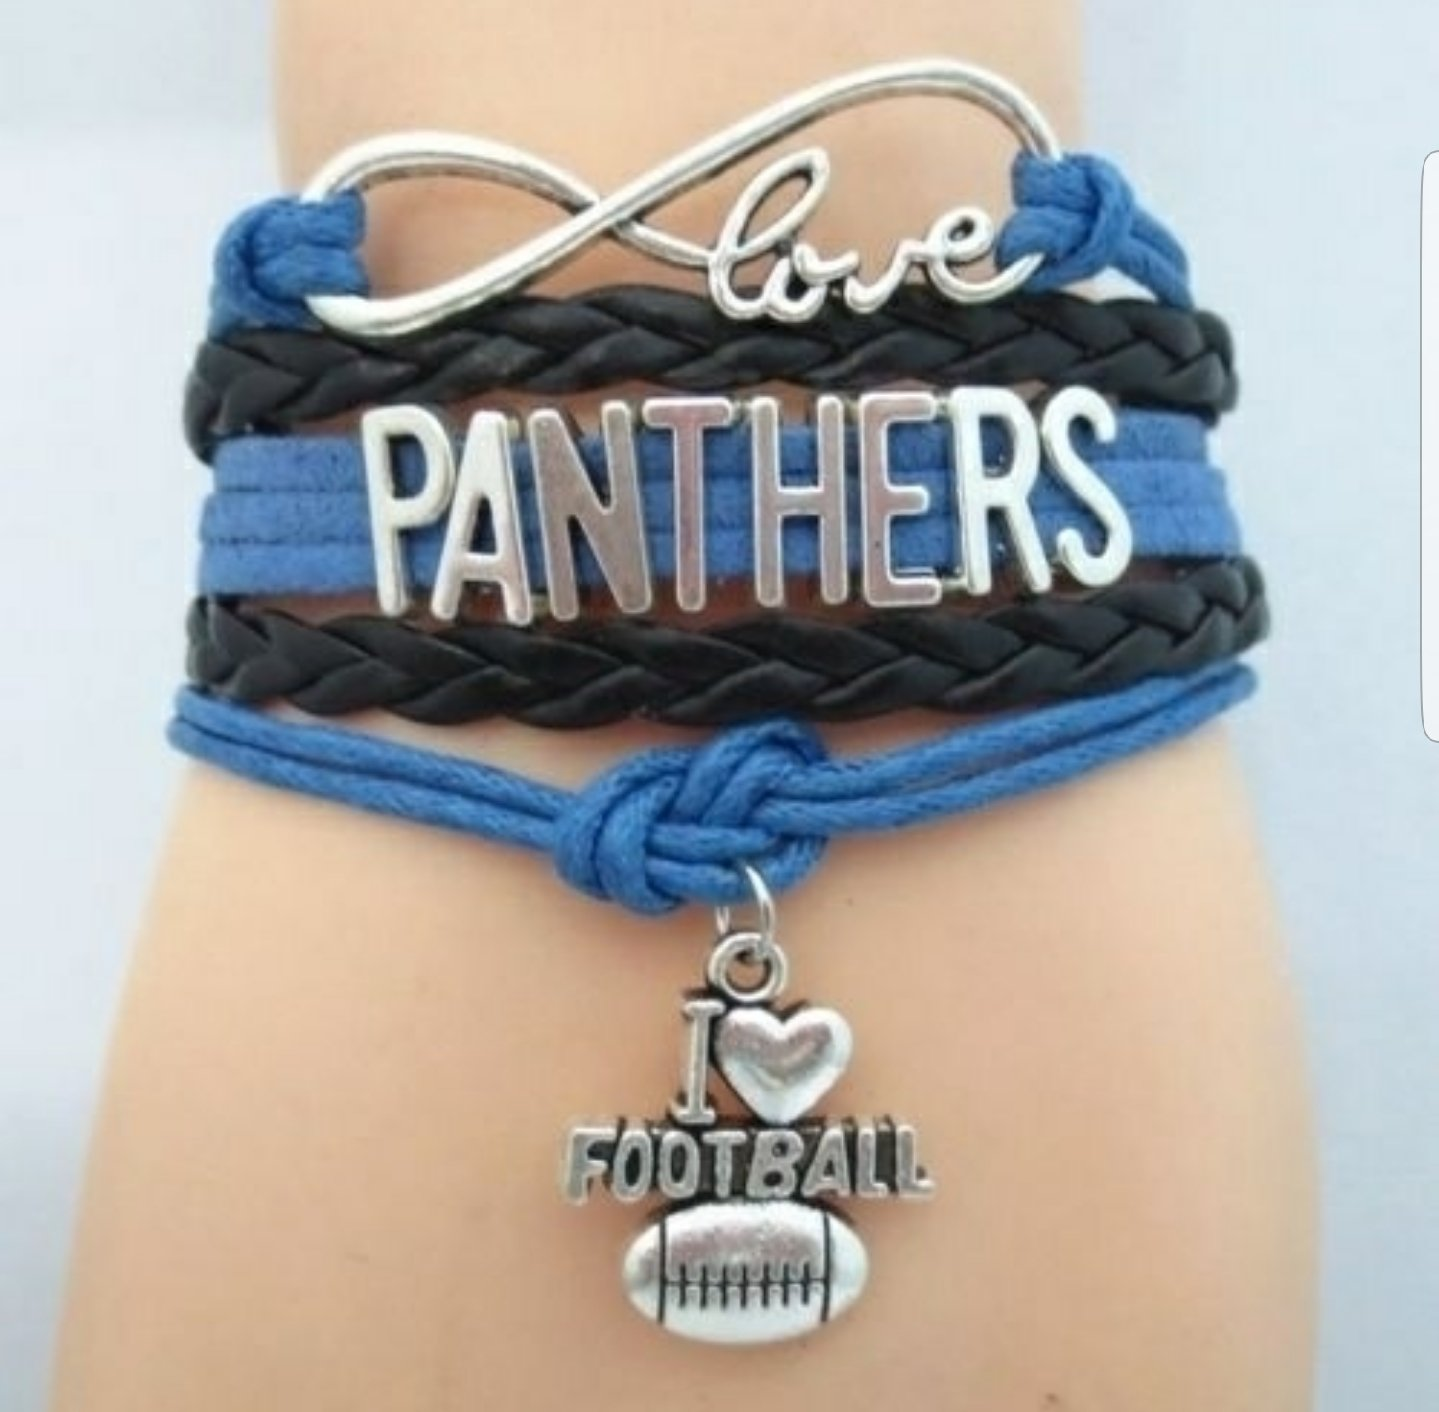 I love the Carolina Panthers Bracelet (WSOAB!)